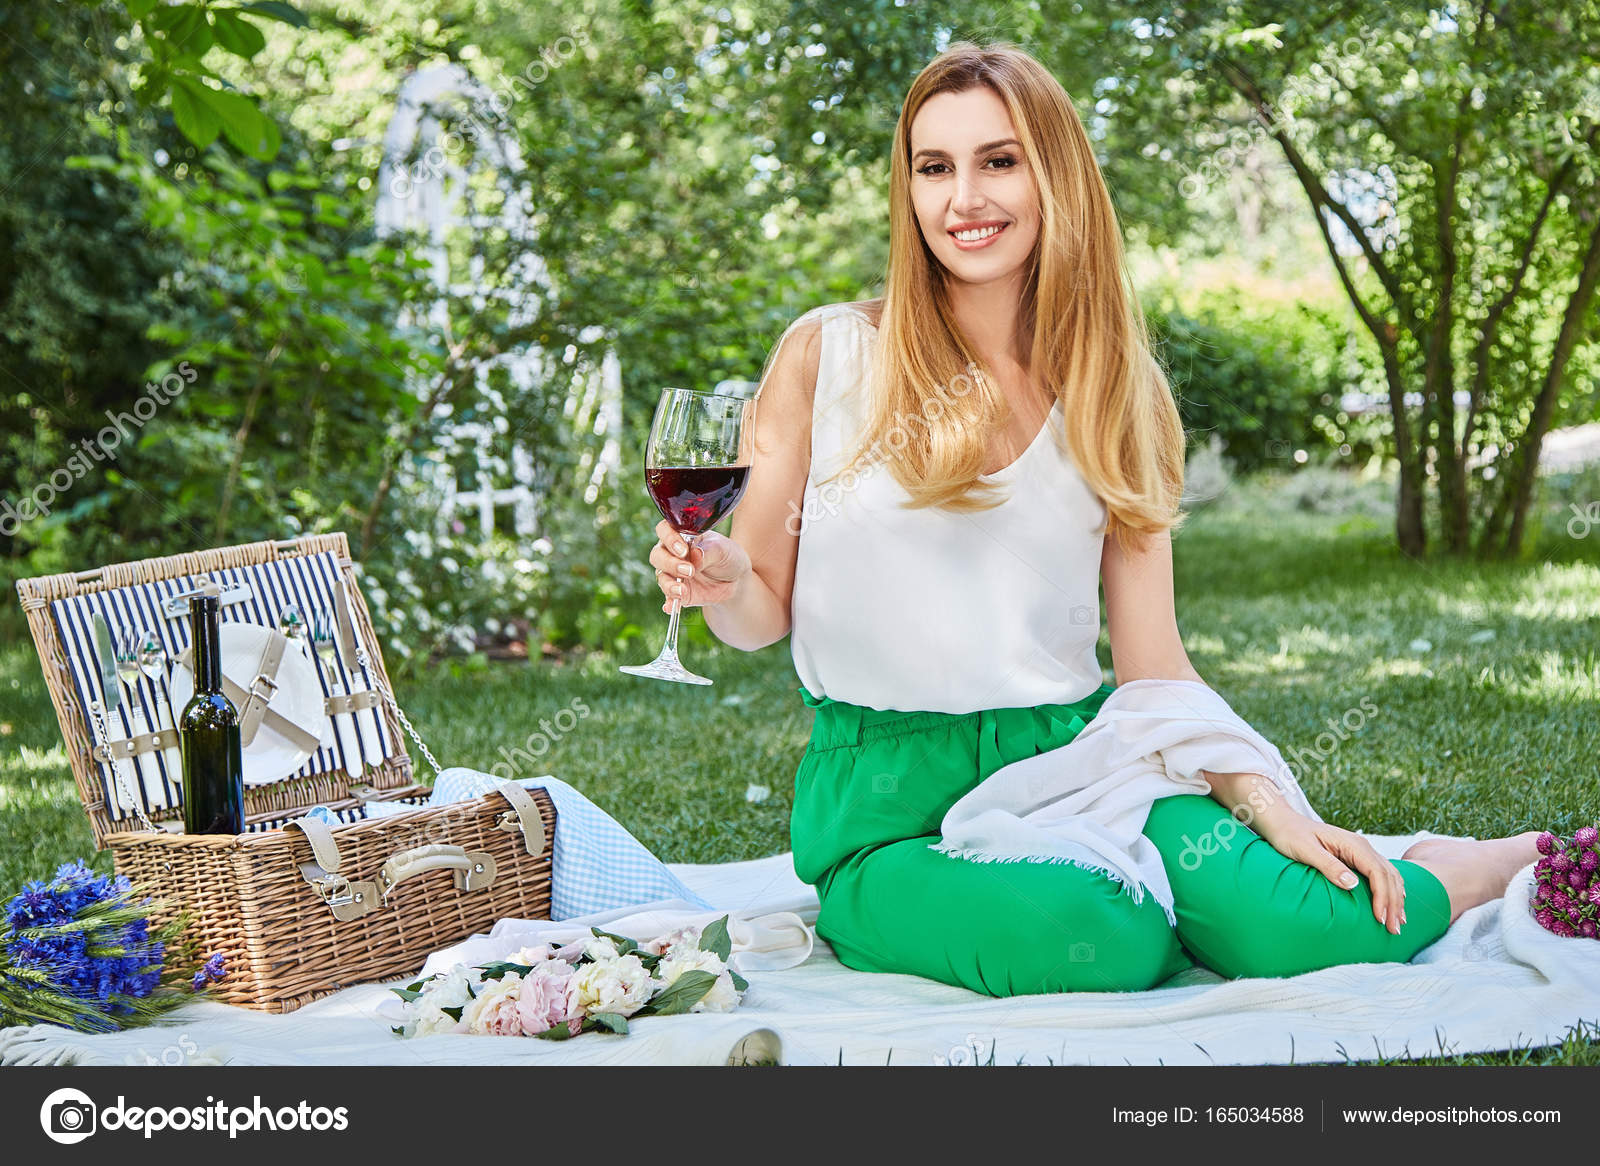 Excellent sexy photos of woman on picnic consider, that